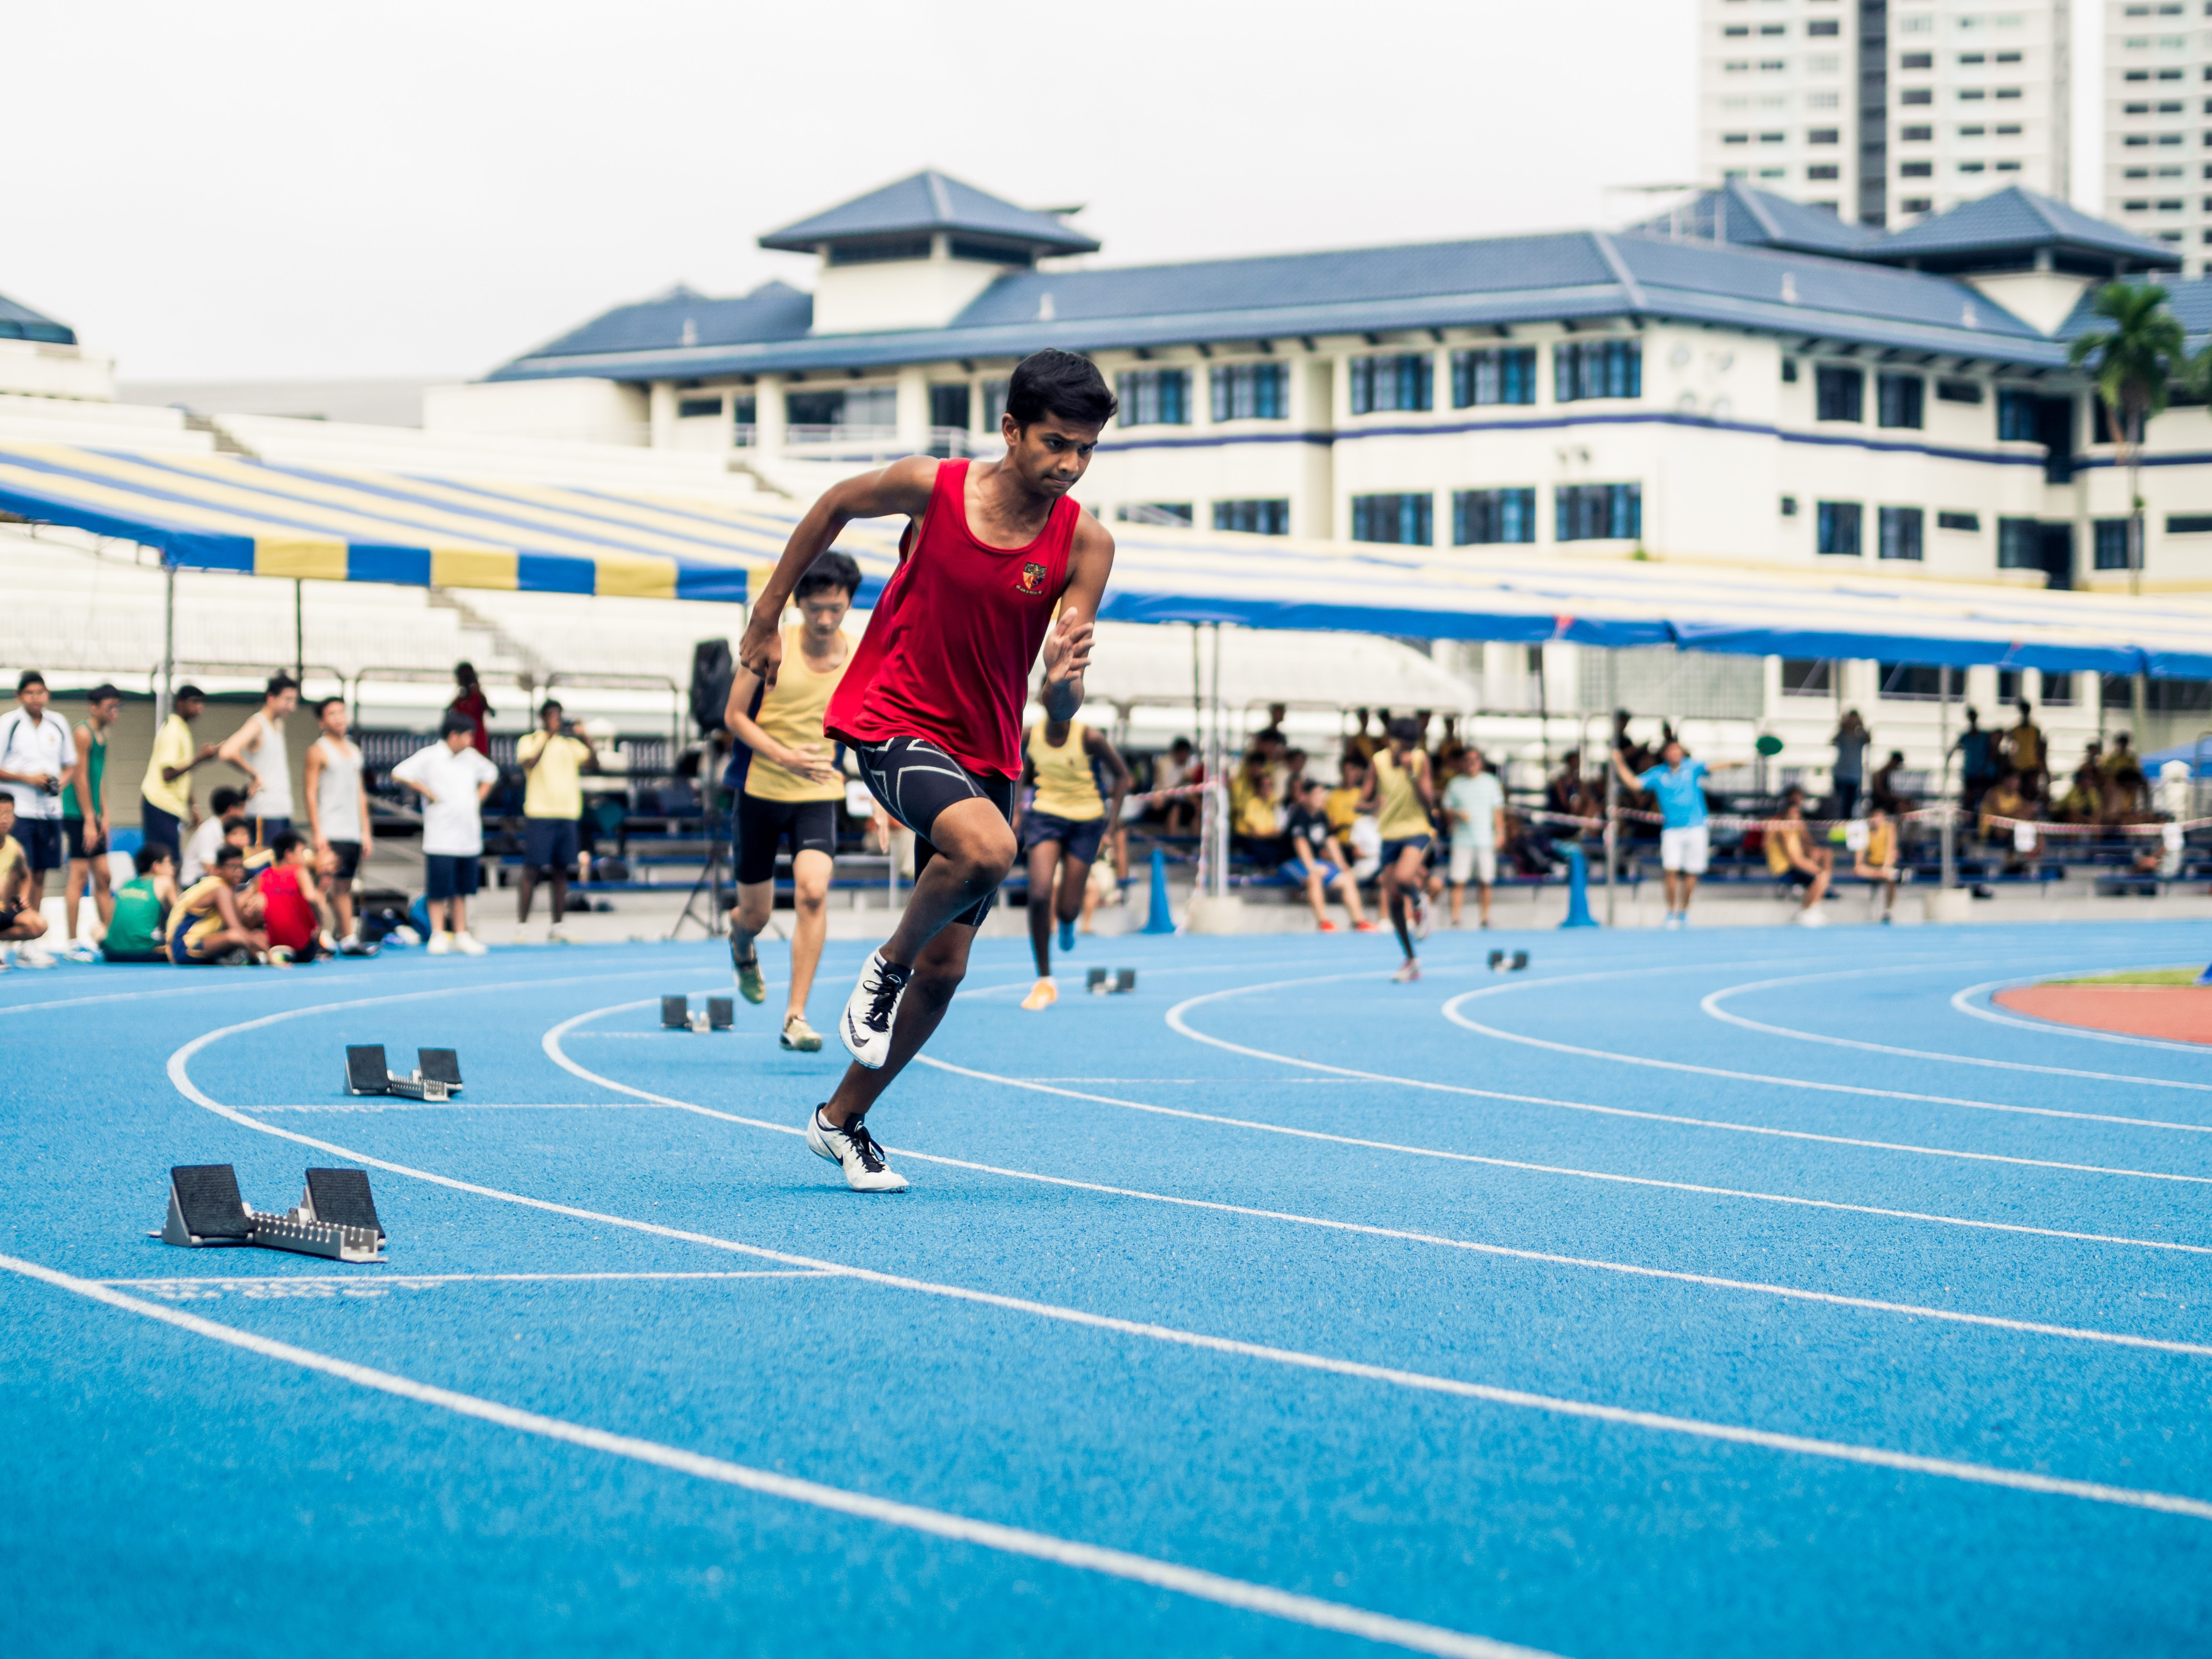 people playing track and field